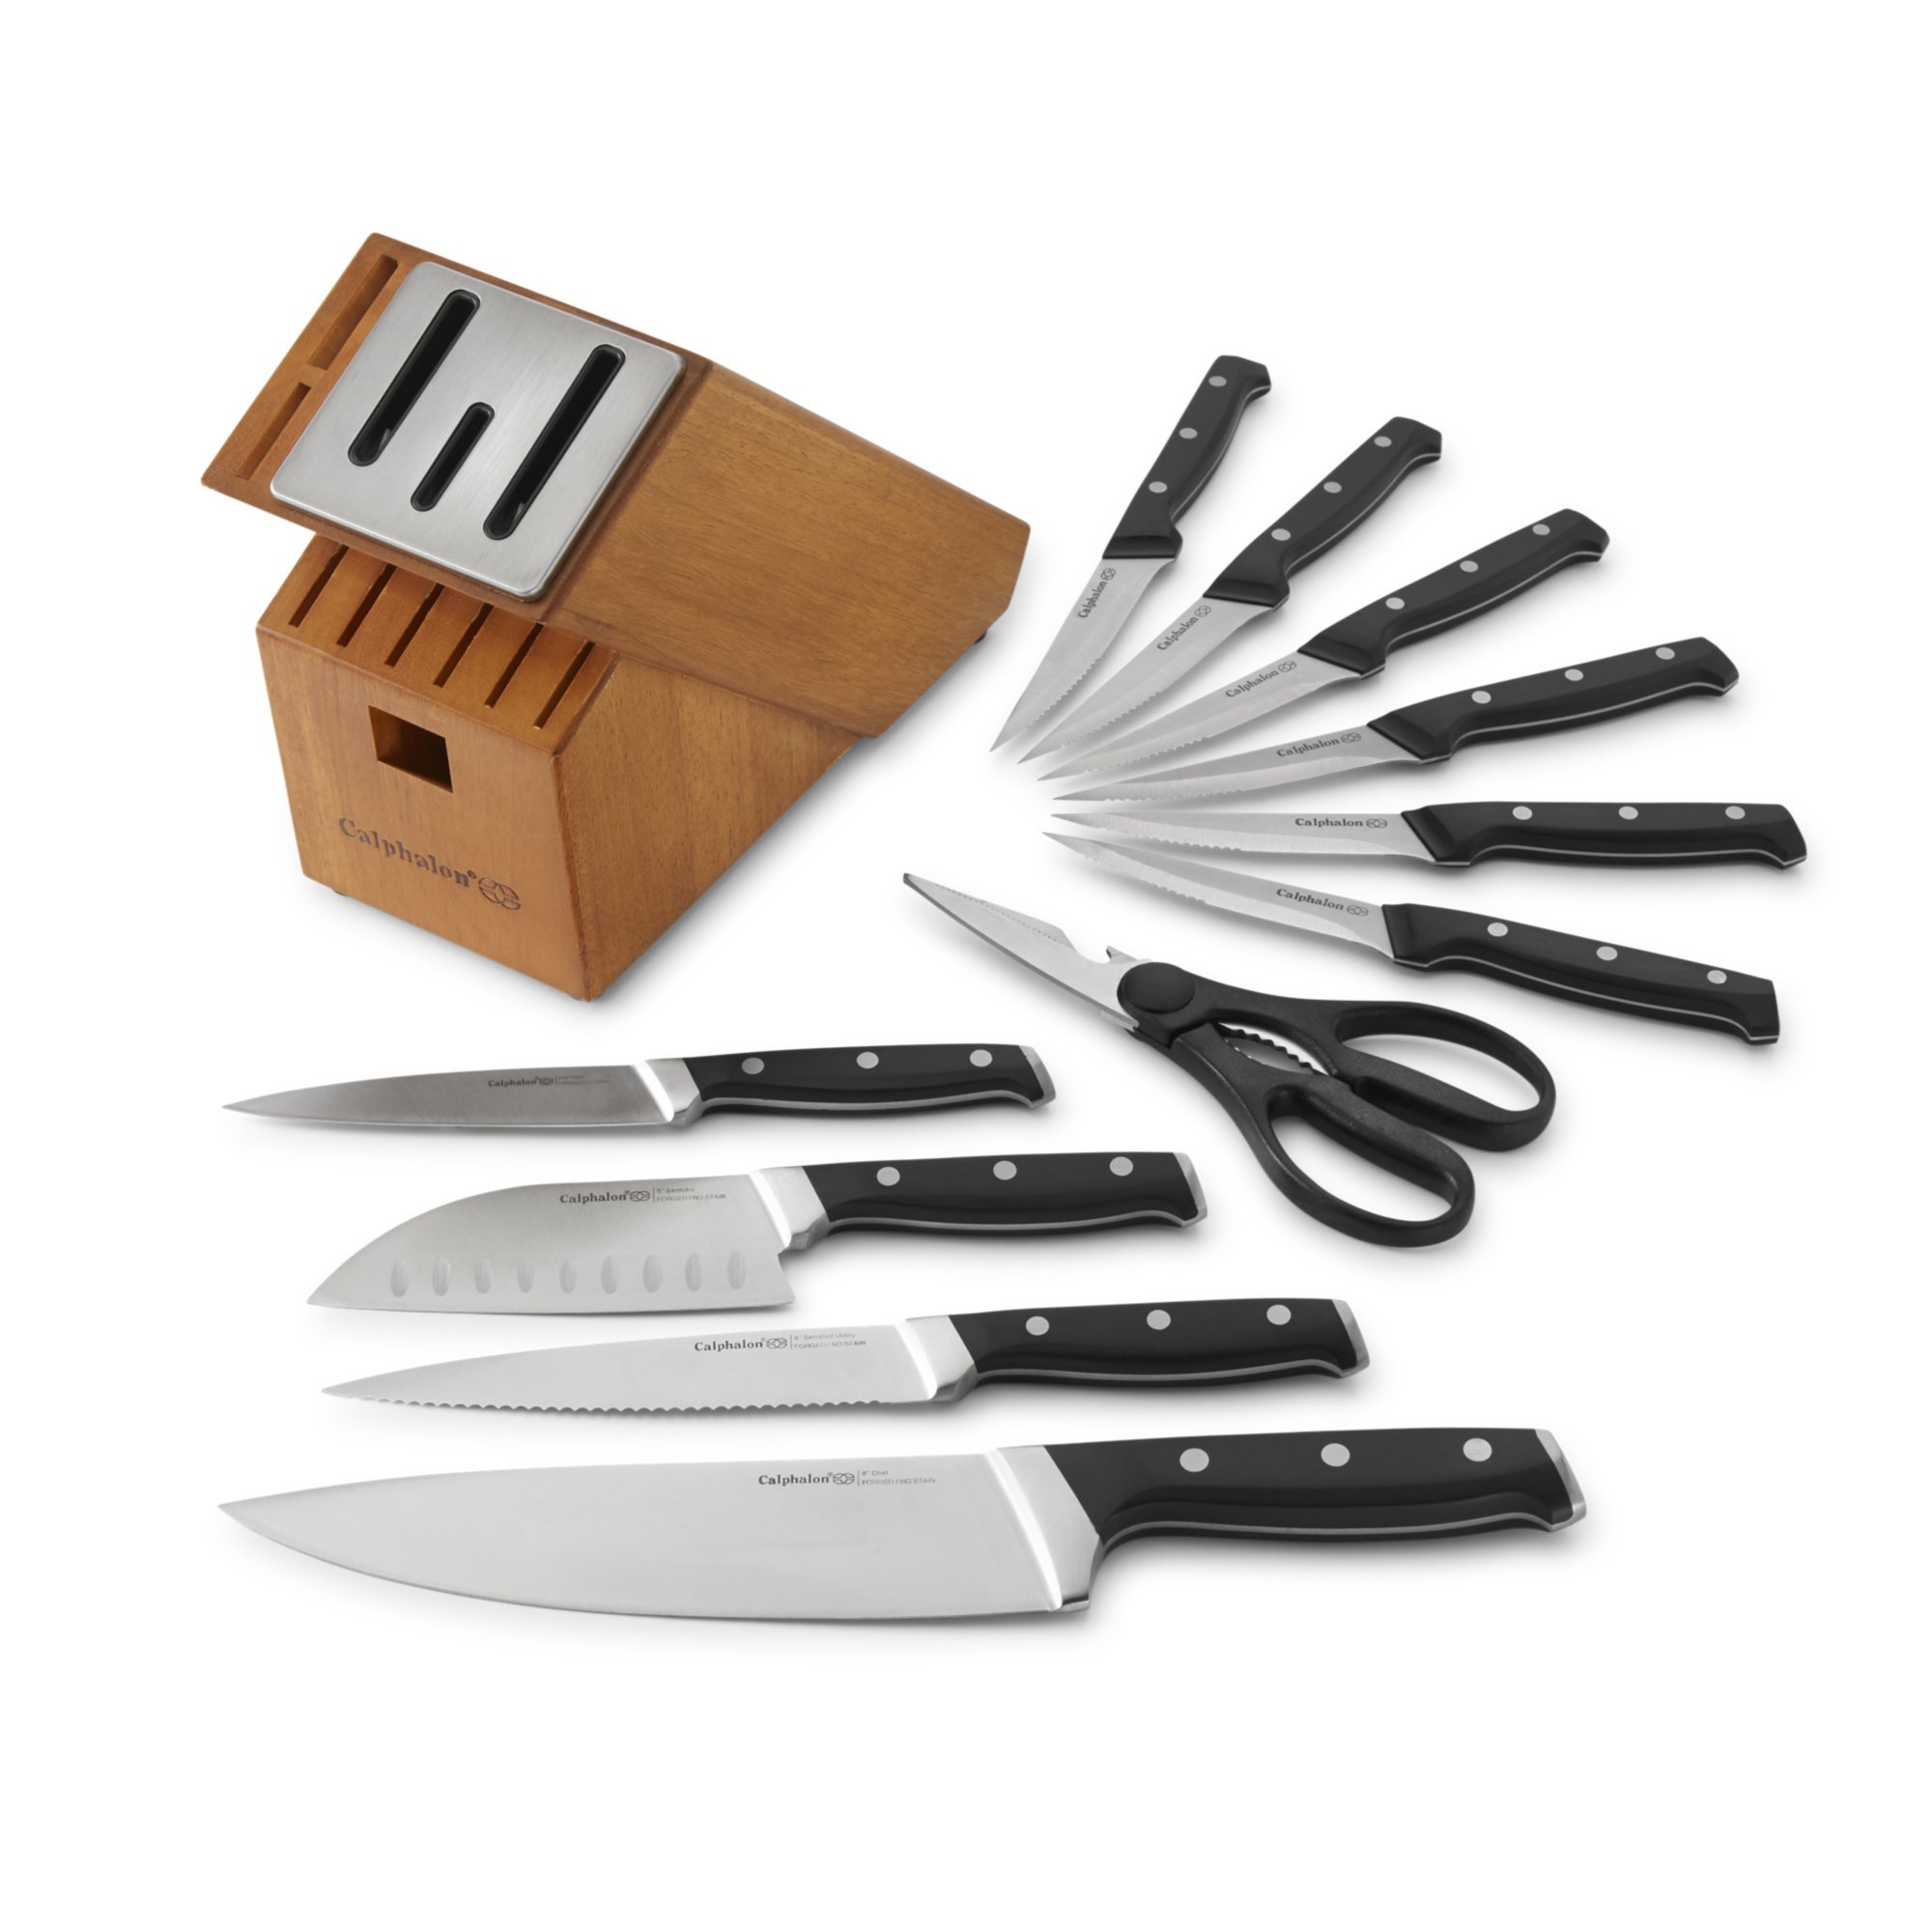 Calphalon Classic Self-Sharpening Cutlery Knife Block Set with SharpIN Technology, 12 Piece by Calphalon (Image #1)